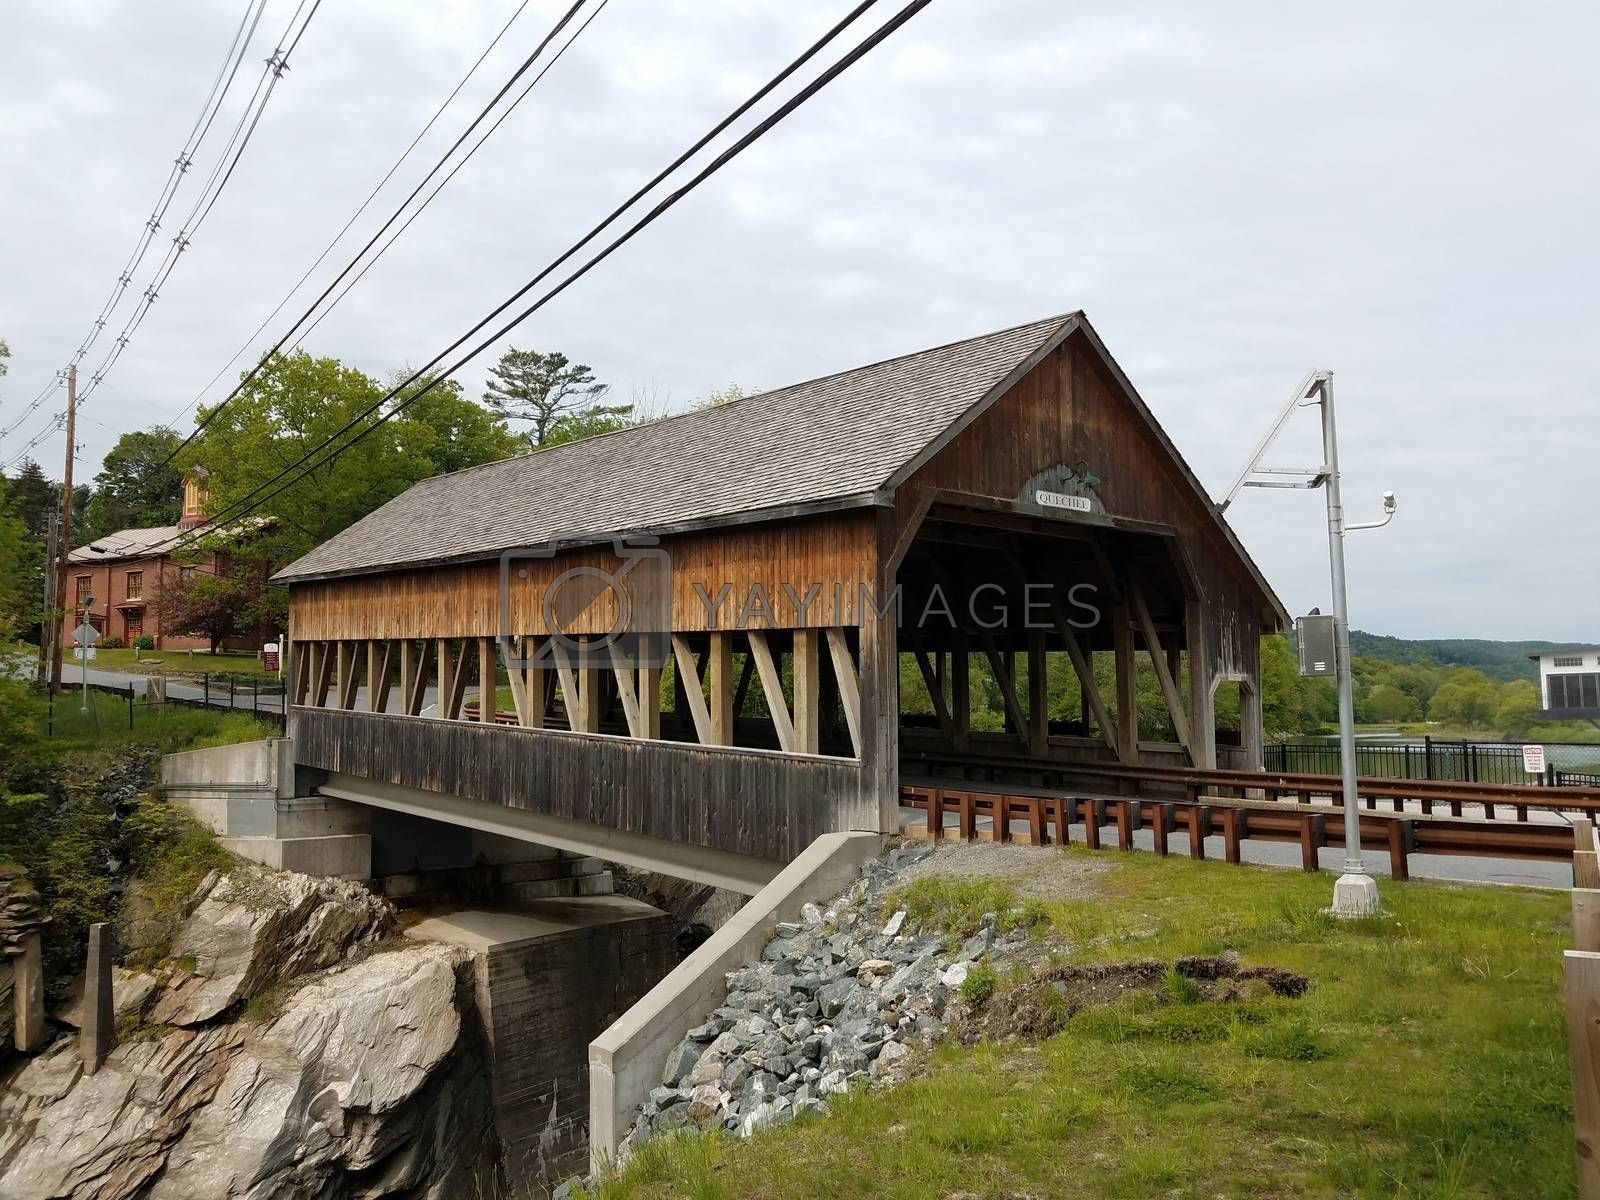 Royalty free image of covered bridge in Quechee, Vermont with wooden covering by stockphotofan1